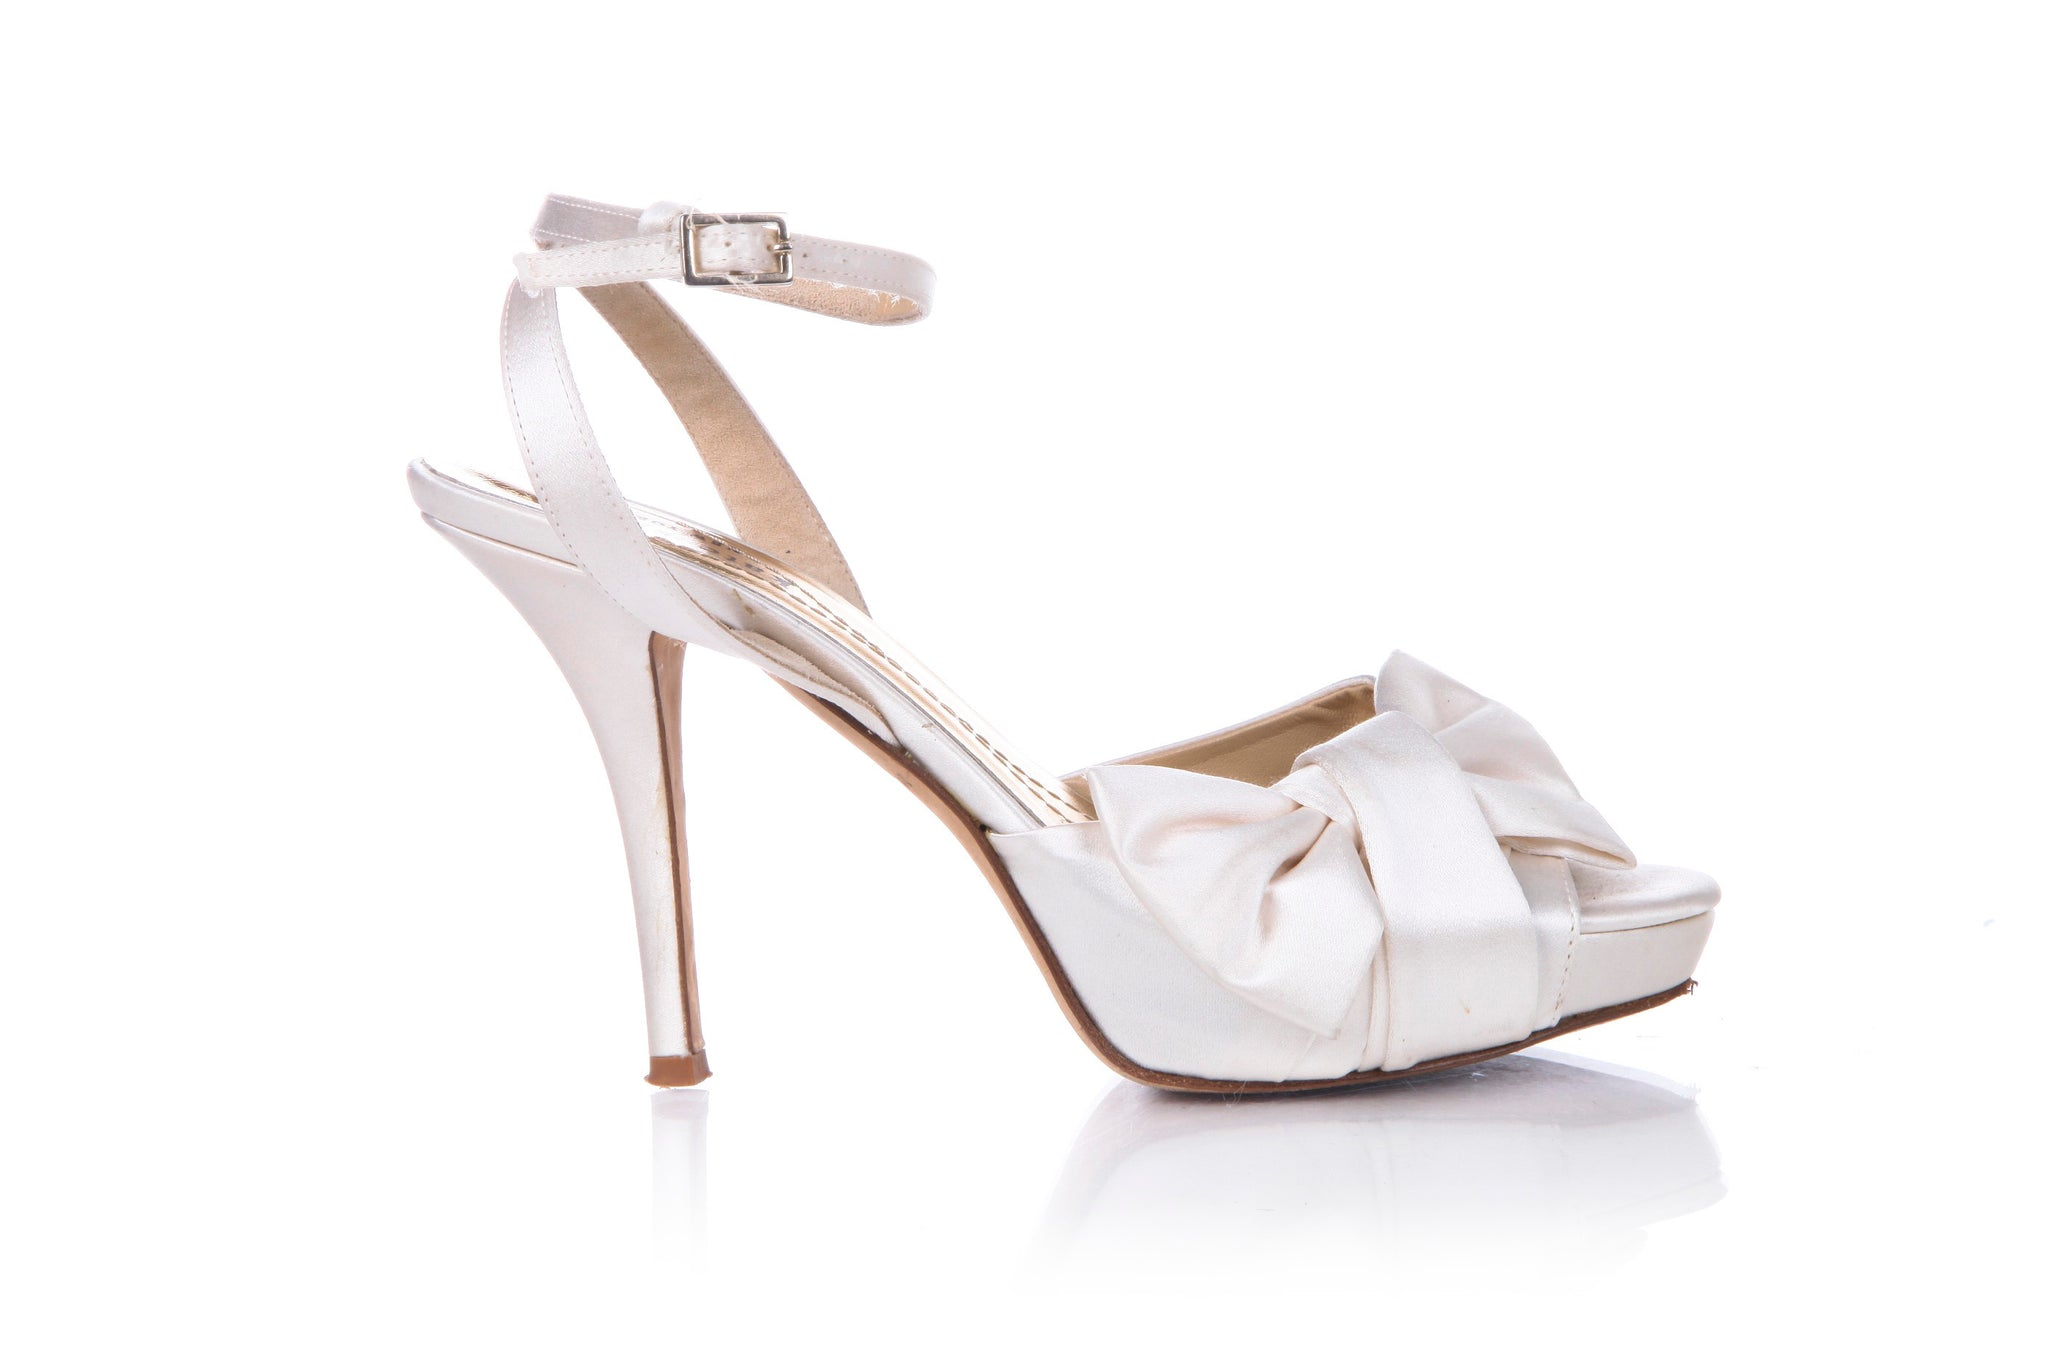 KATE SPADE Heels Size 6 Ivory Satin Wedding Shoes Bow D'Orsay Platform Open Toe